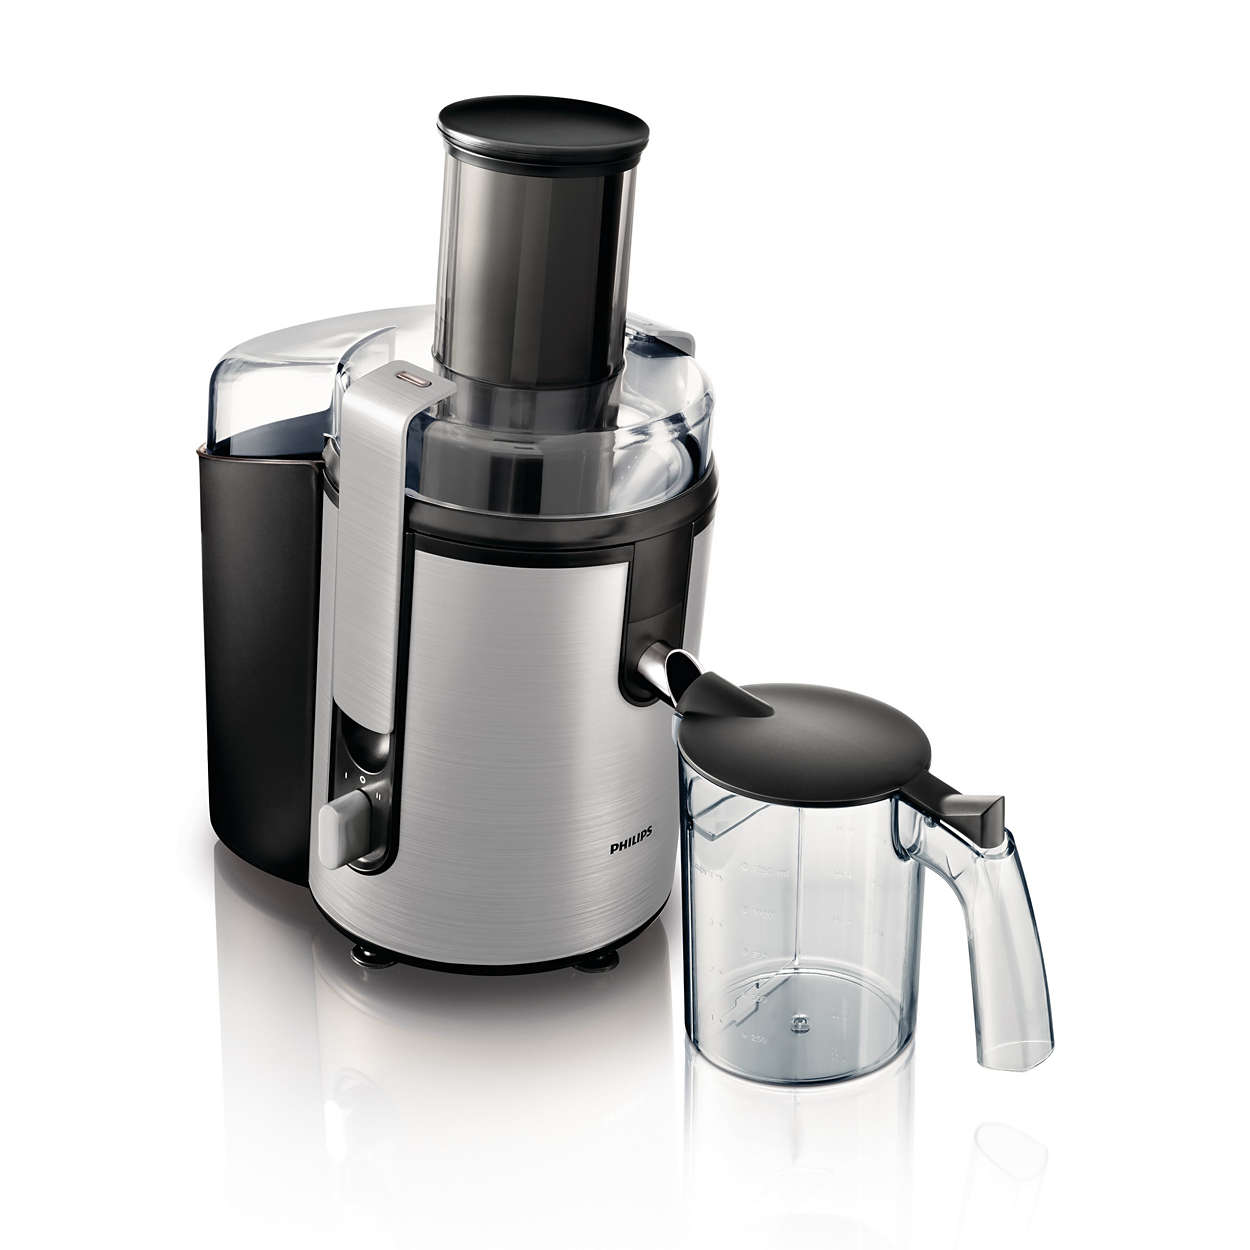 Aluminium Collection Juicer HR1866/00 Philips